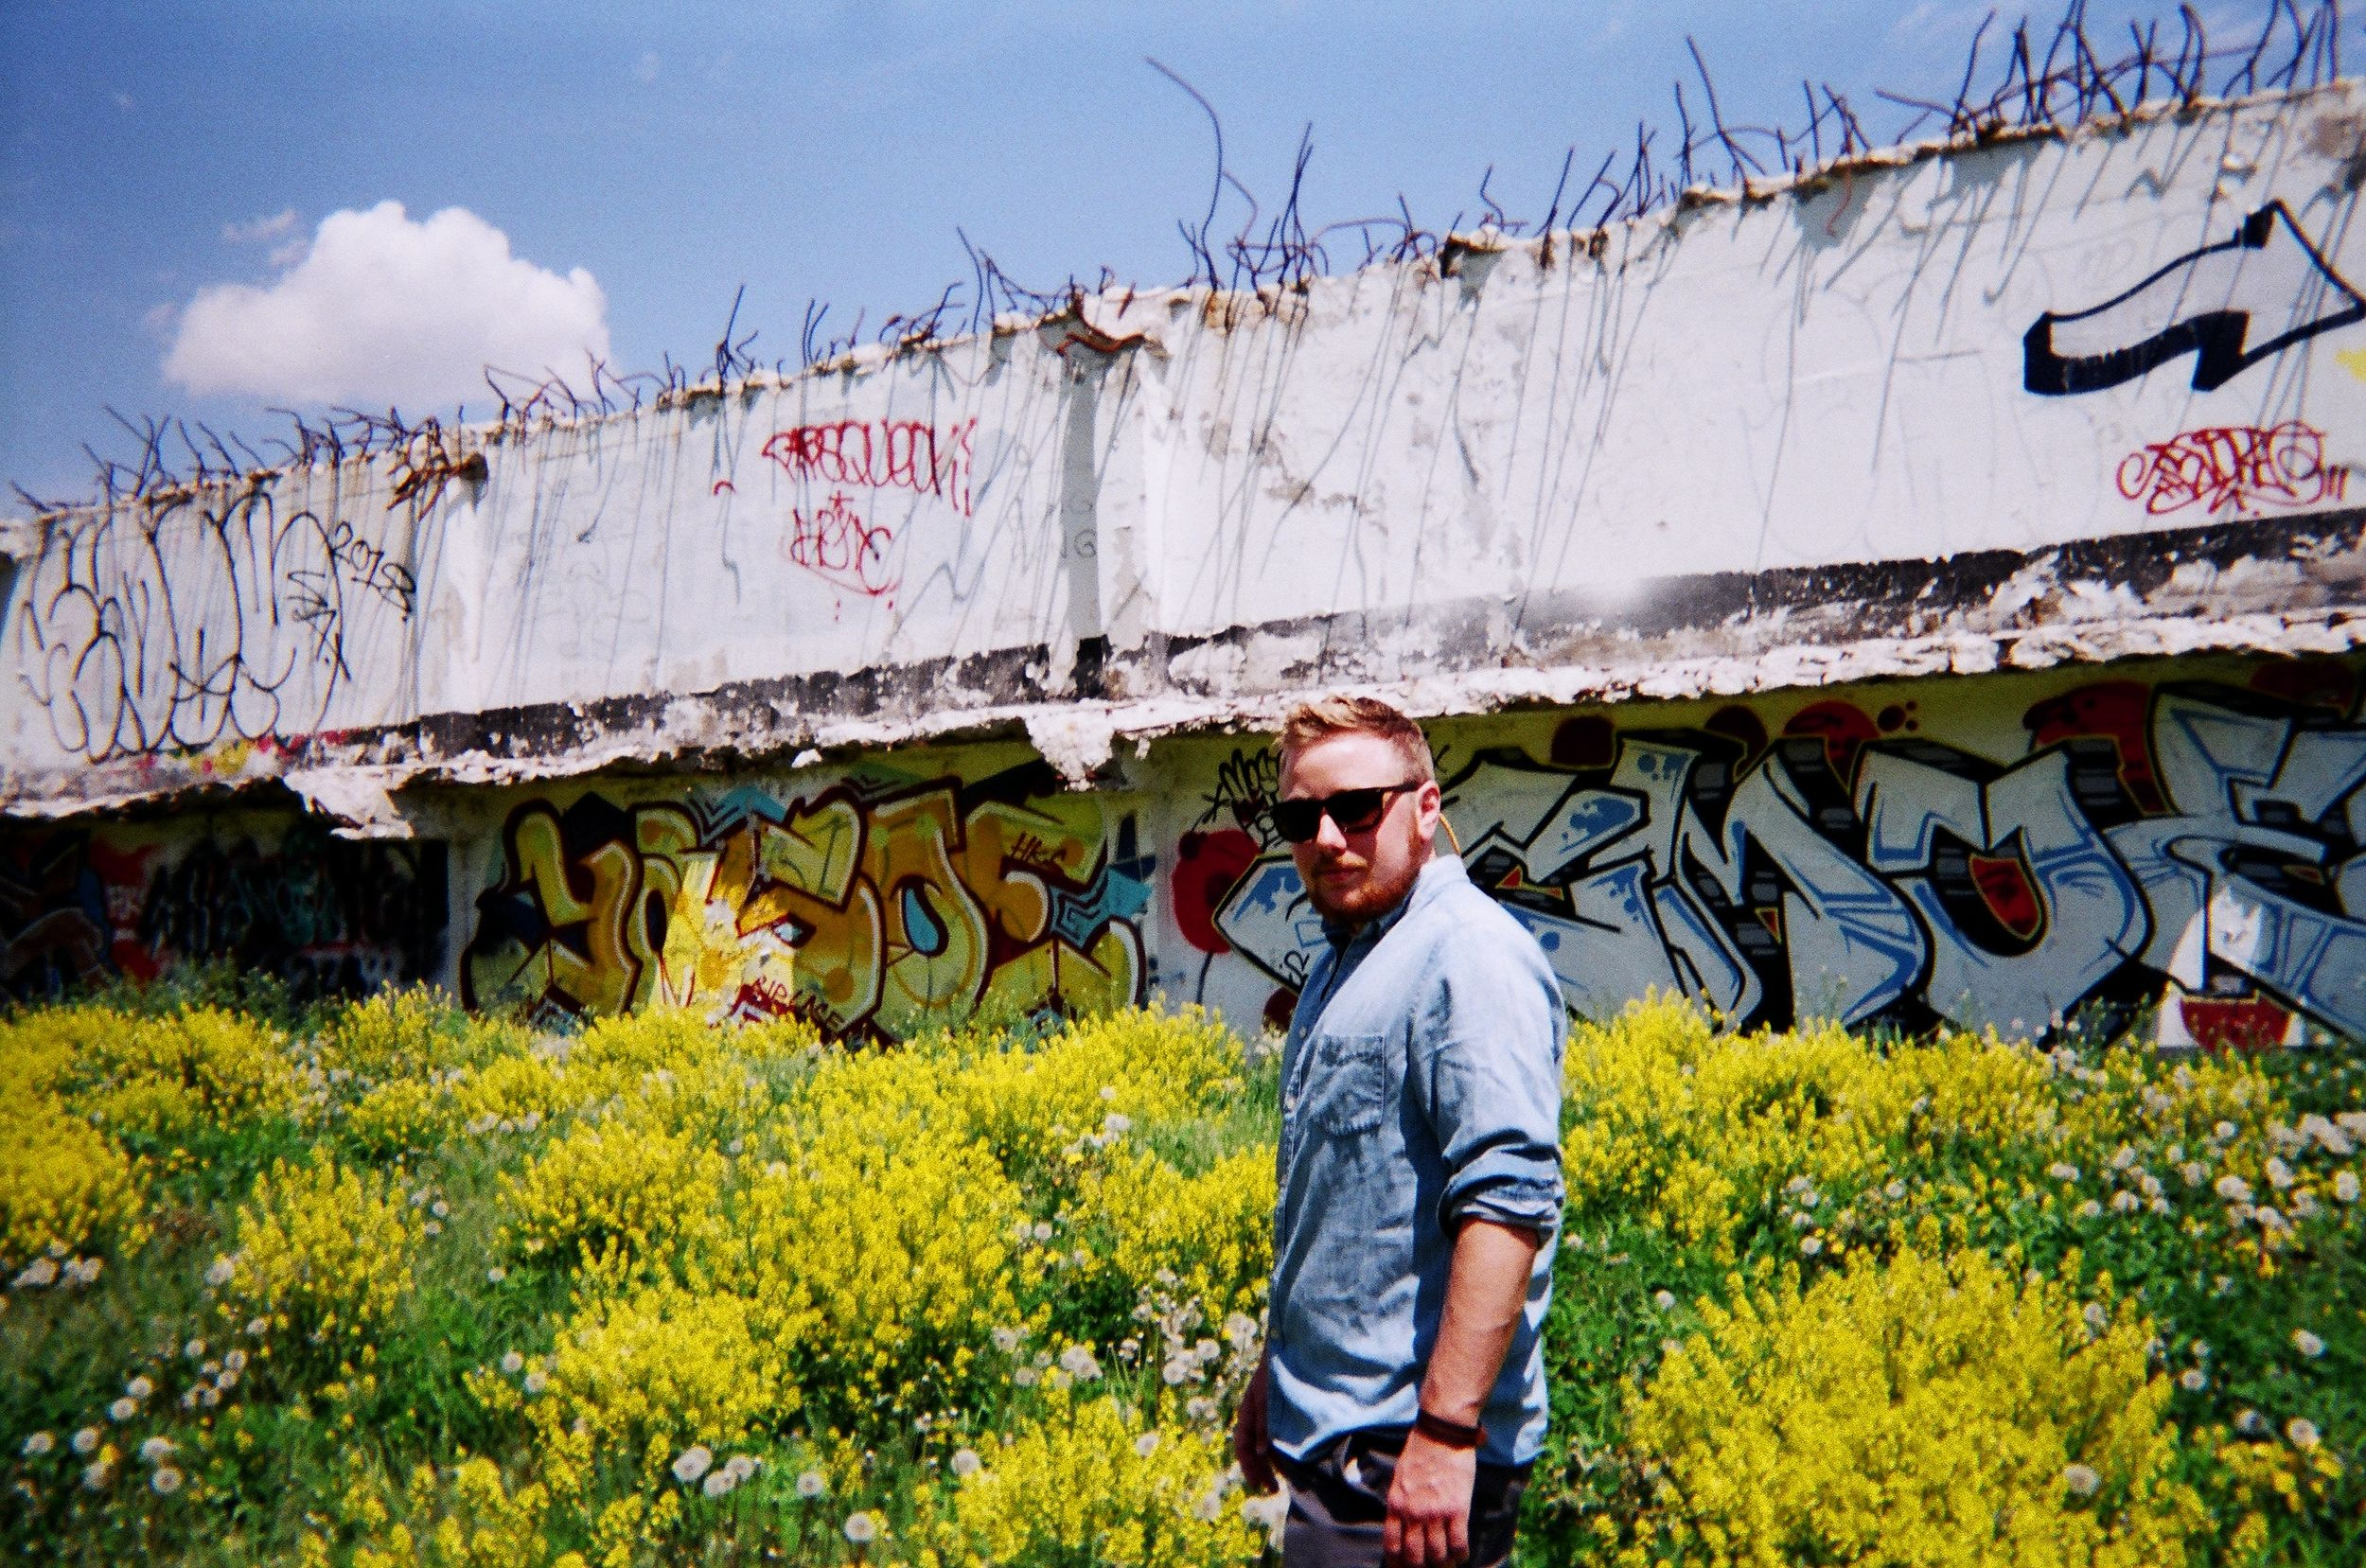 man wearing blue denim shirt in yellow field of flowers with graffiti wall nearby